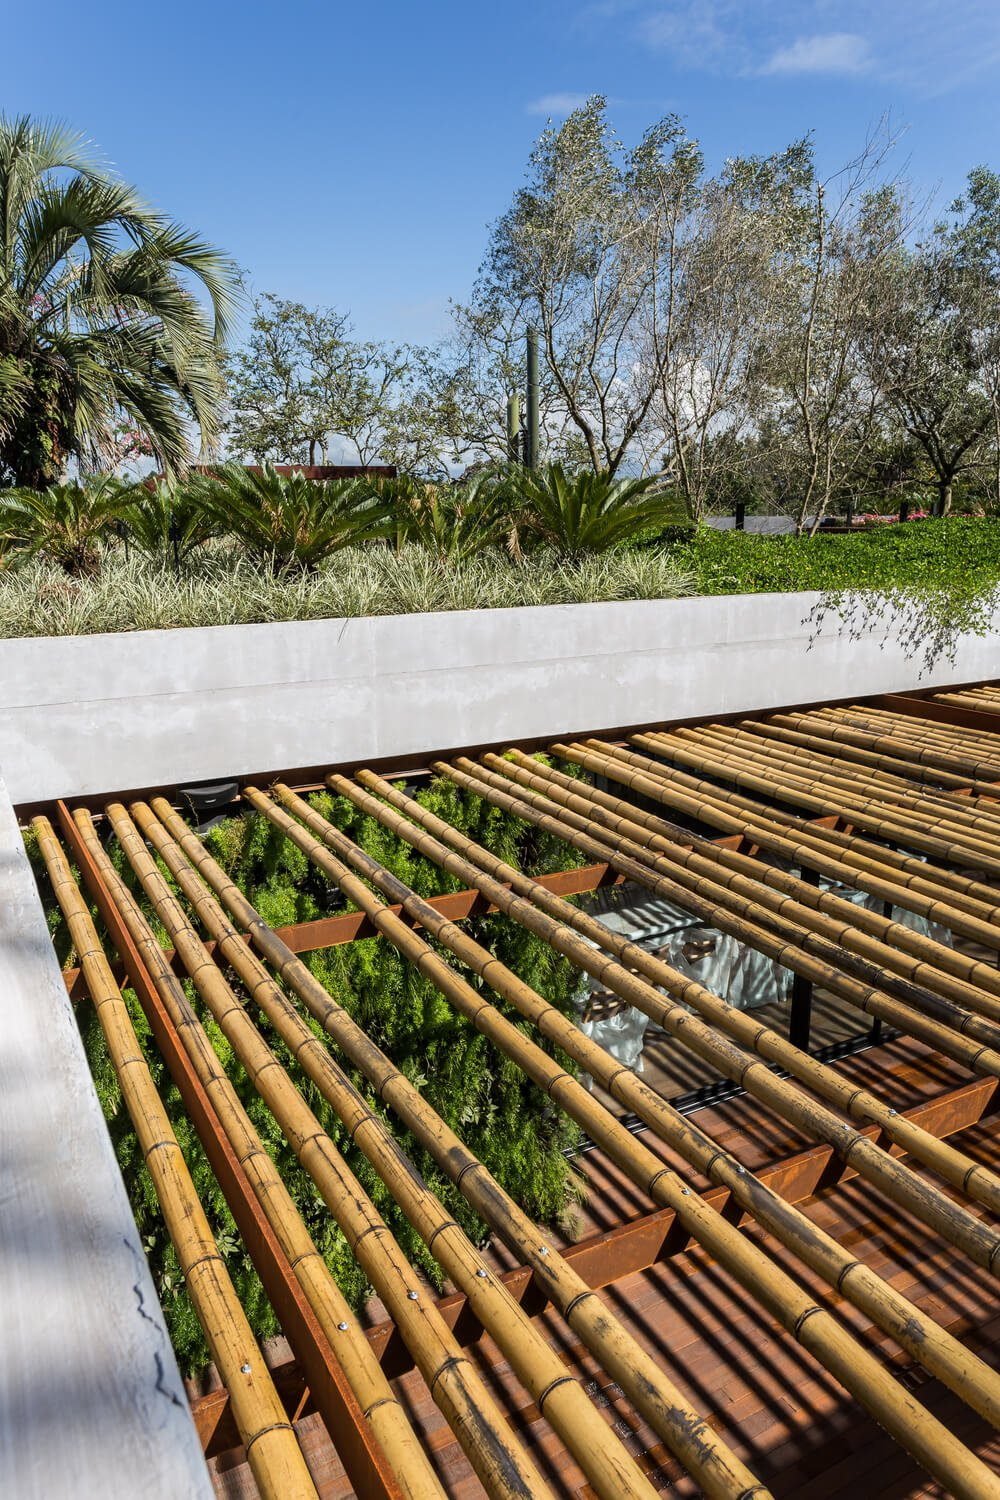 The wooden trellises over the deck patio is made of pieces of bamboo.